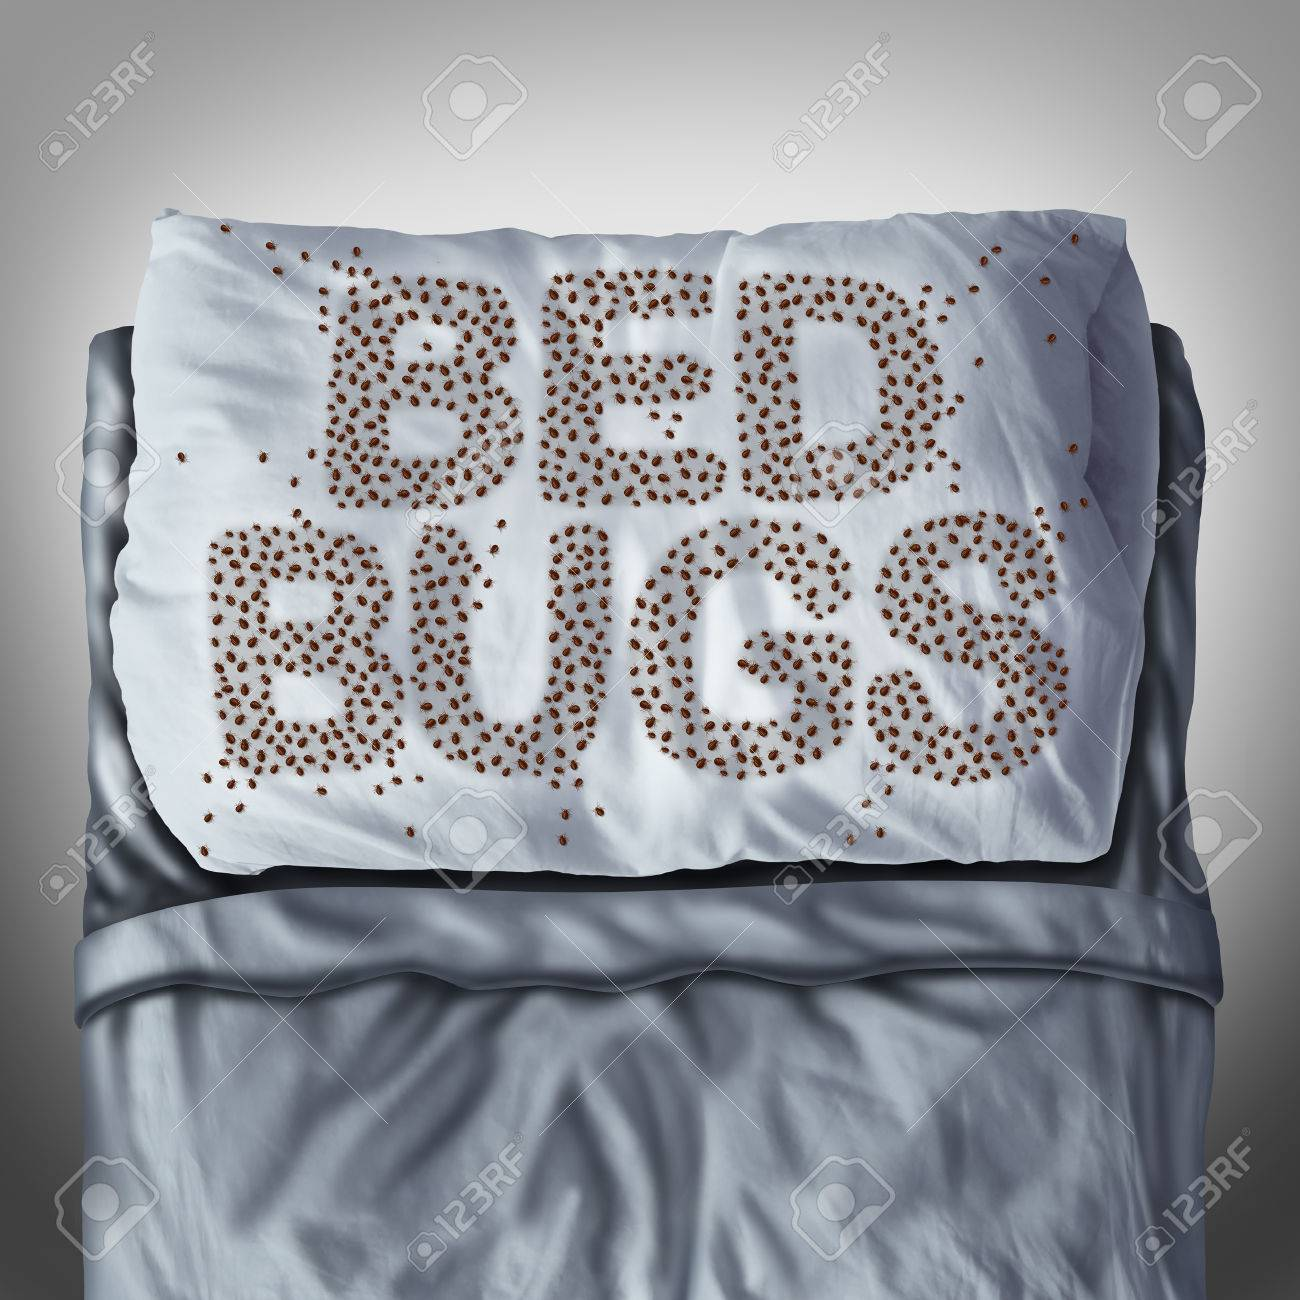 bedbug: Bed bug on pillow and in bed as a bedbug infestation concept shaped  as